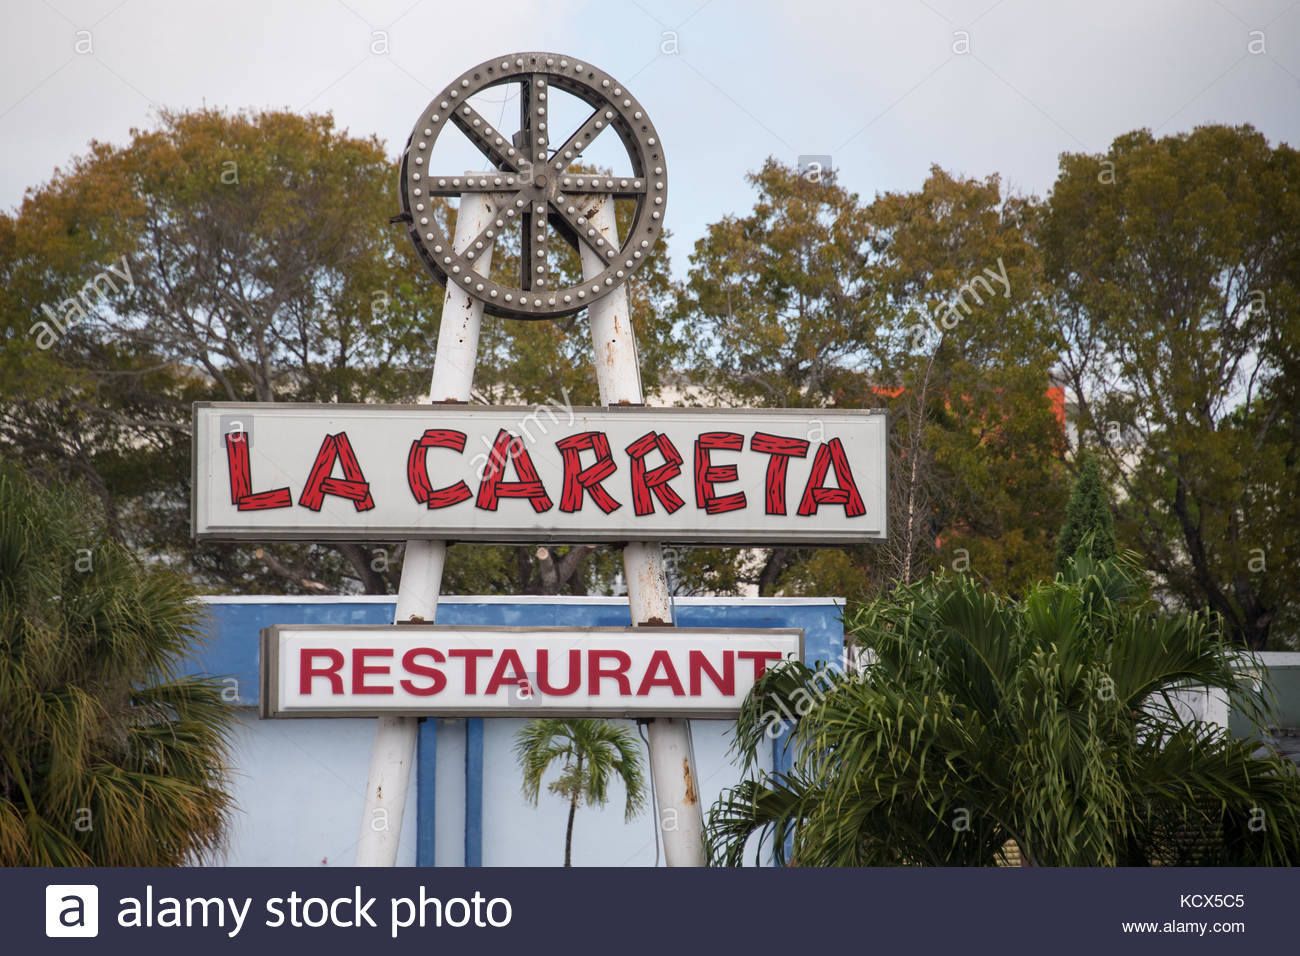 La Carreta Central Valley, Carreta Stock Photos & Carreta Stock Images - Alamy